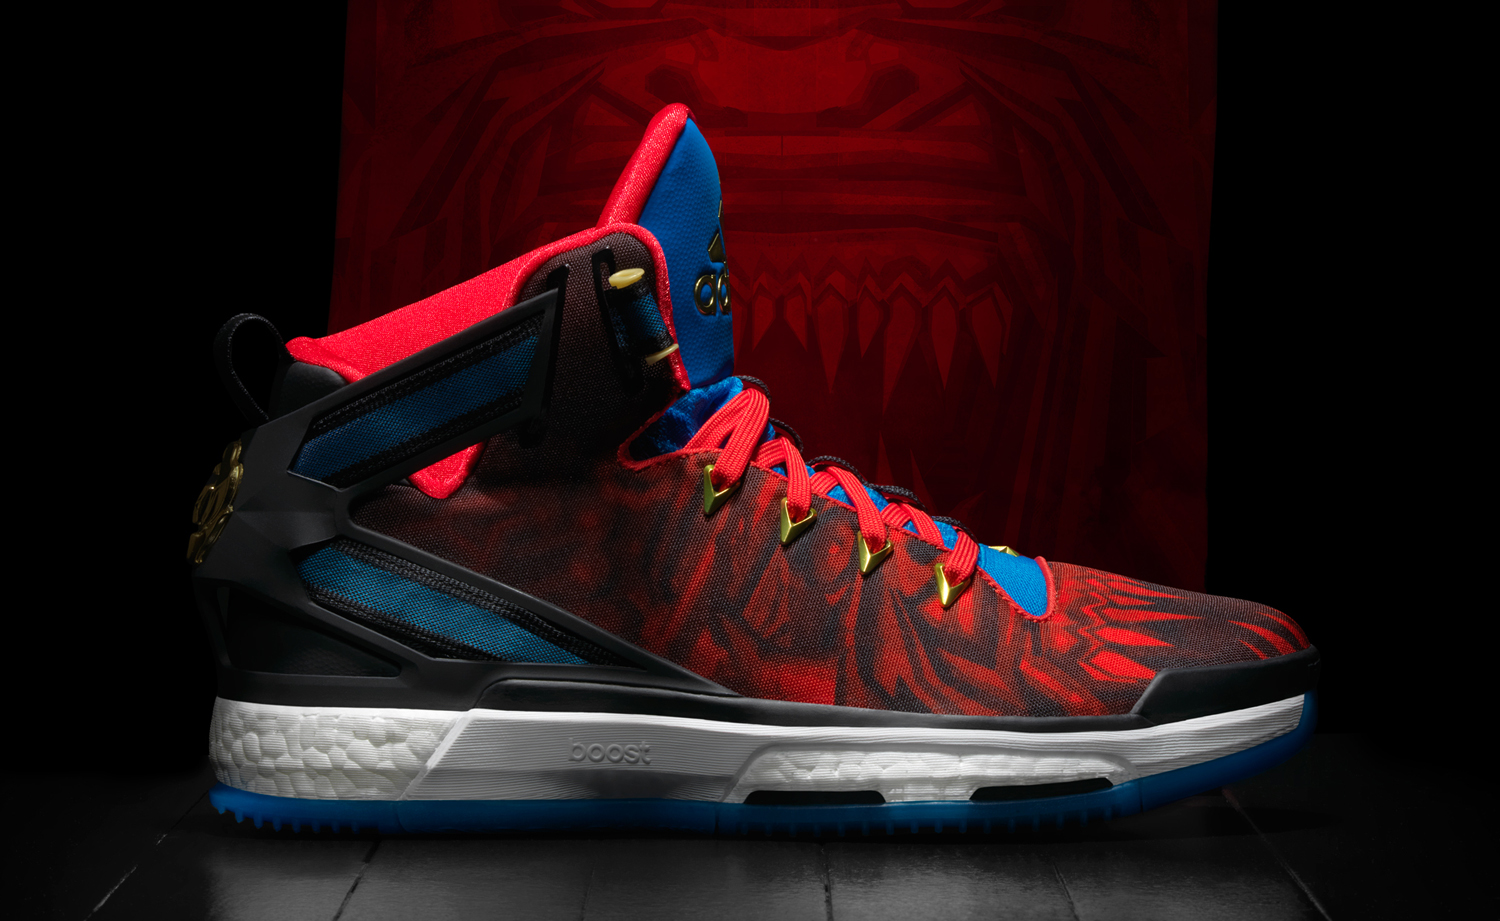 adidas basketball shoes damian lillard. adidas basketball rings in chinese new year via \u0027fire monkey\u0027 shoes. for damian lillard shoes 3